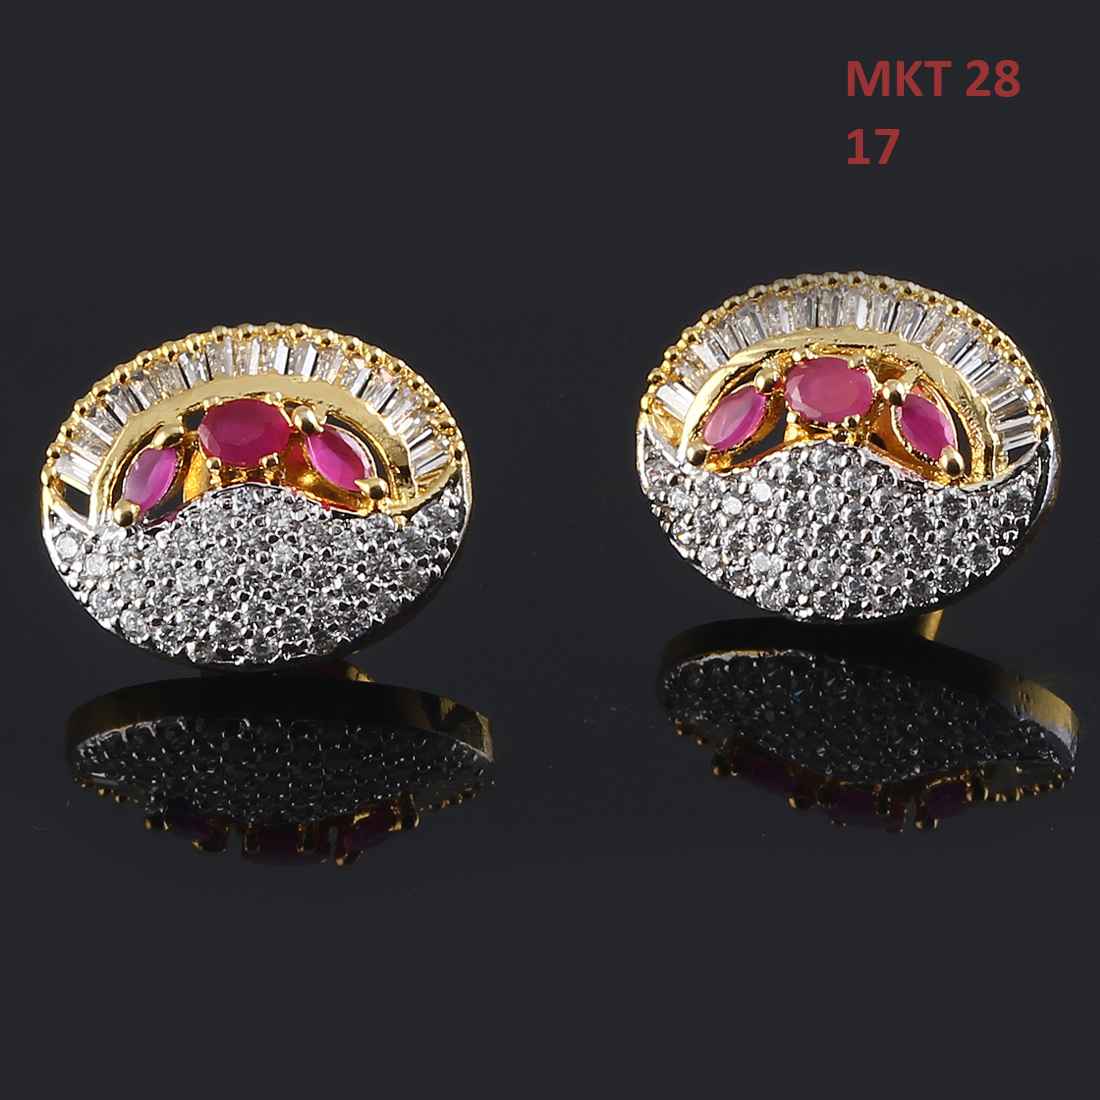 55Carat | 55Carat Ear Tops Gold Plated Ruby, Cubic Zircon Ideal Pair Earrings Tops Ear Tops,Gold Plated,Ruby, Cubic Zircon,Ideal Pair Earrings Tops MKT-28-PINK